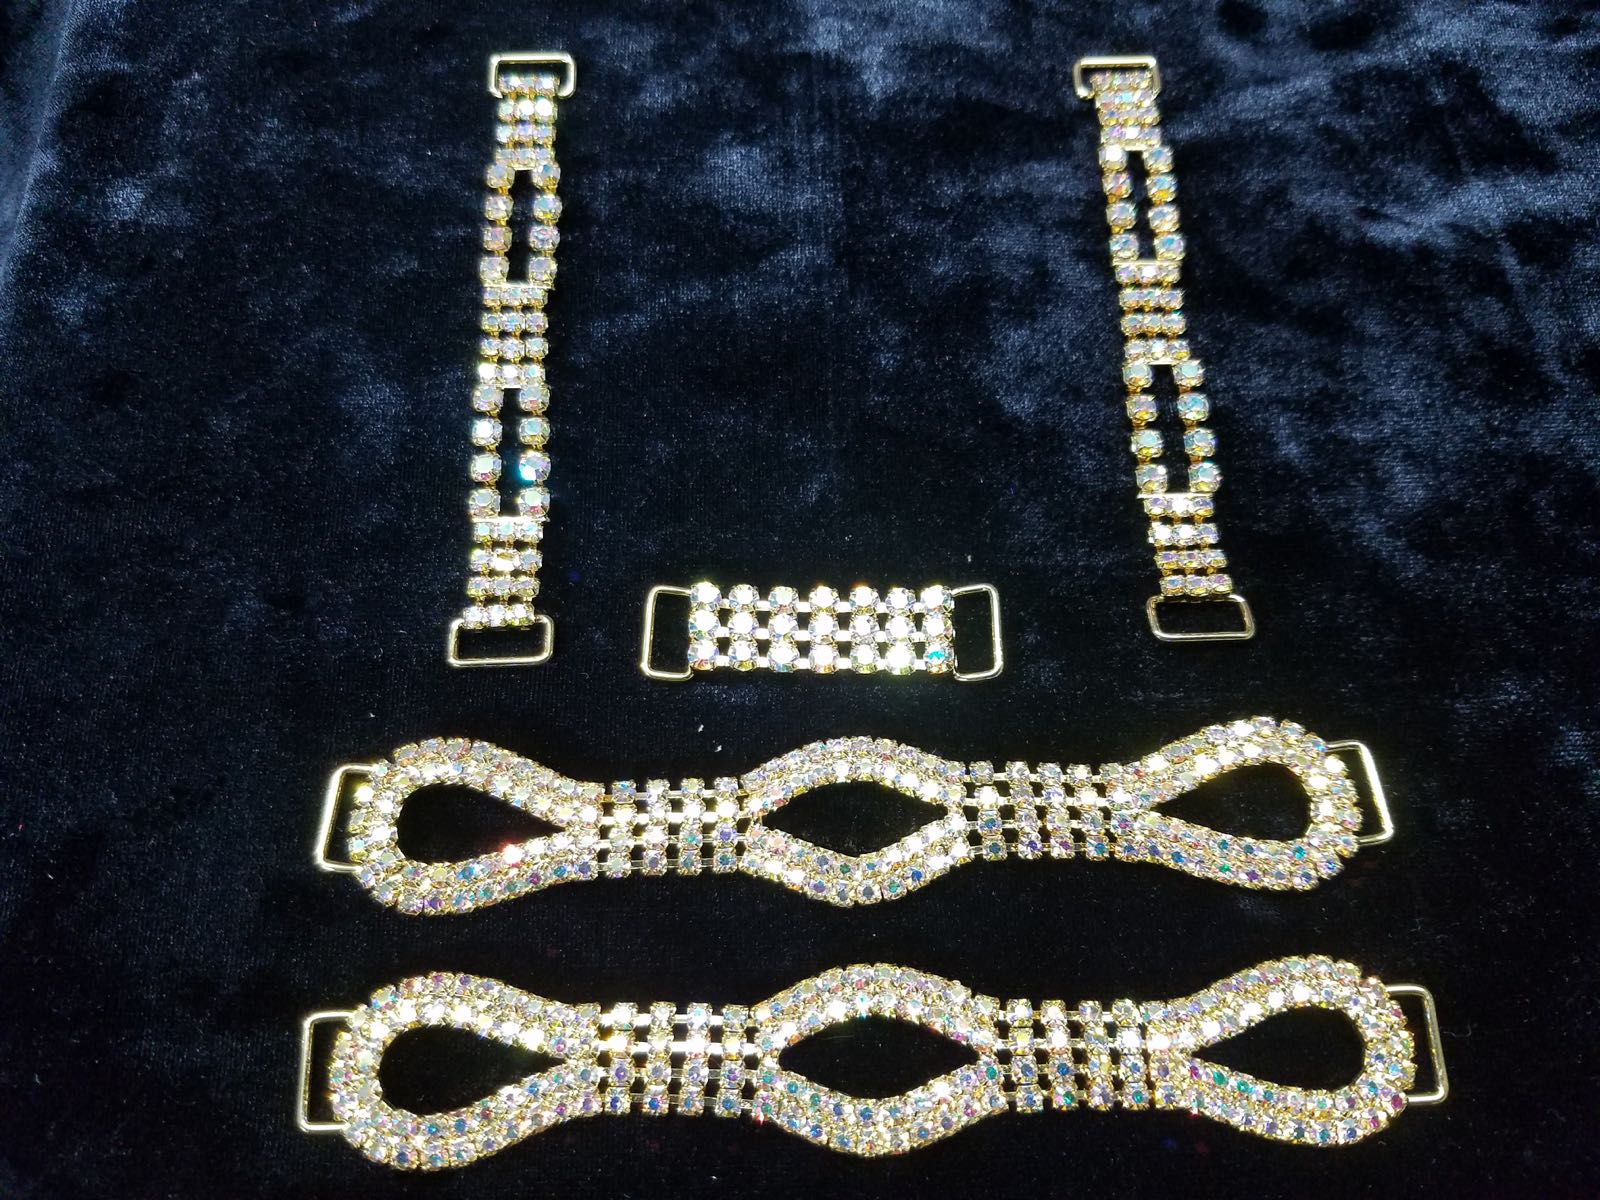 Set E, Gold with clear aurora borealis crystals, $65.00